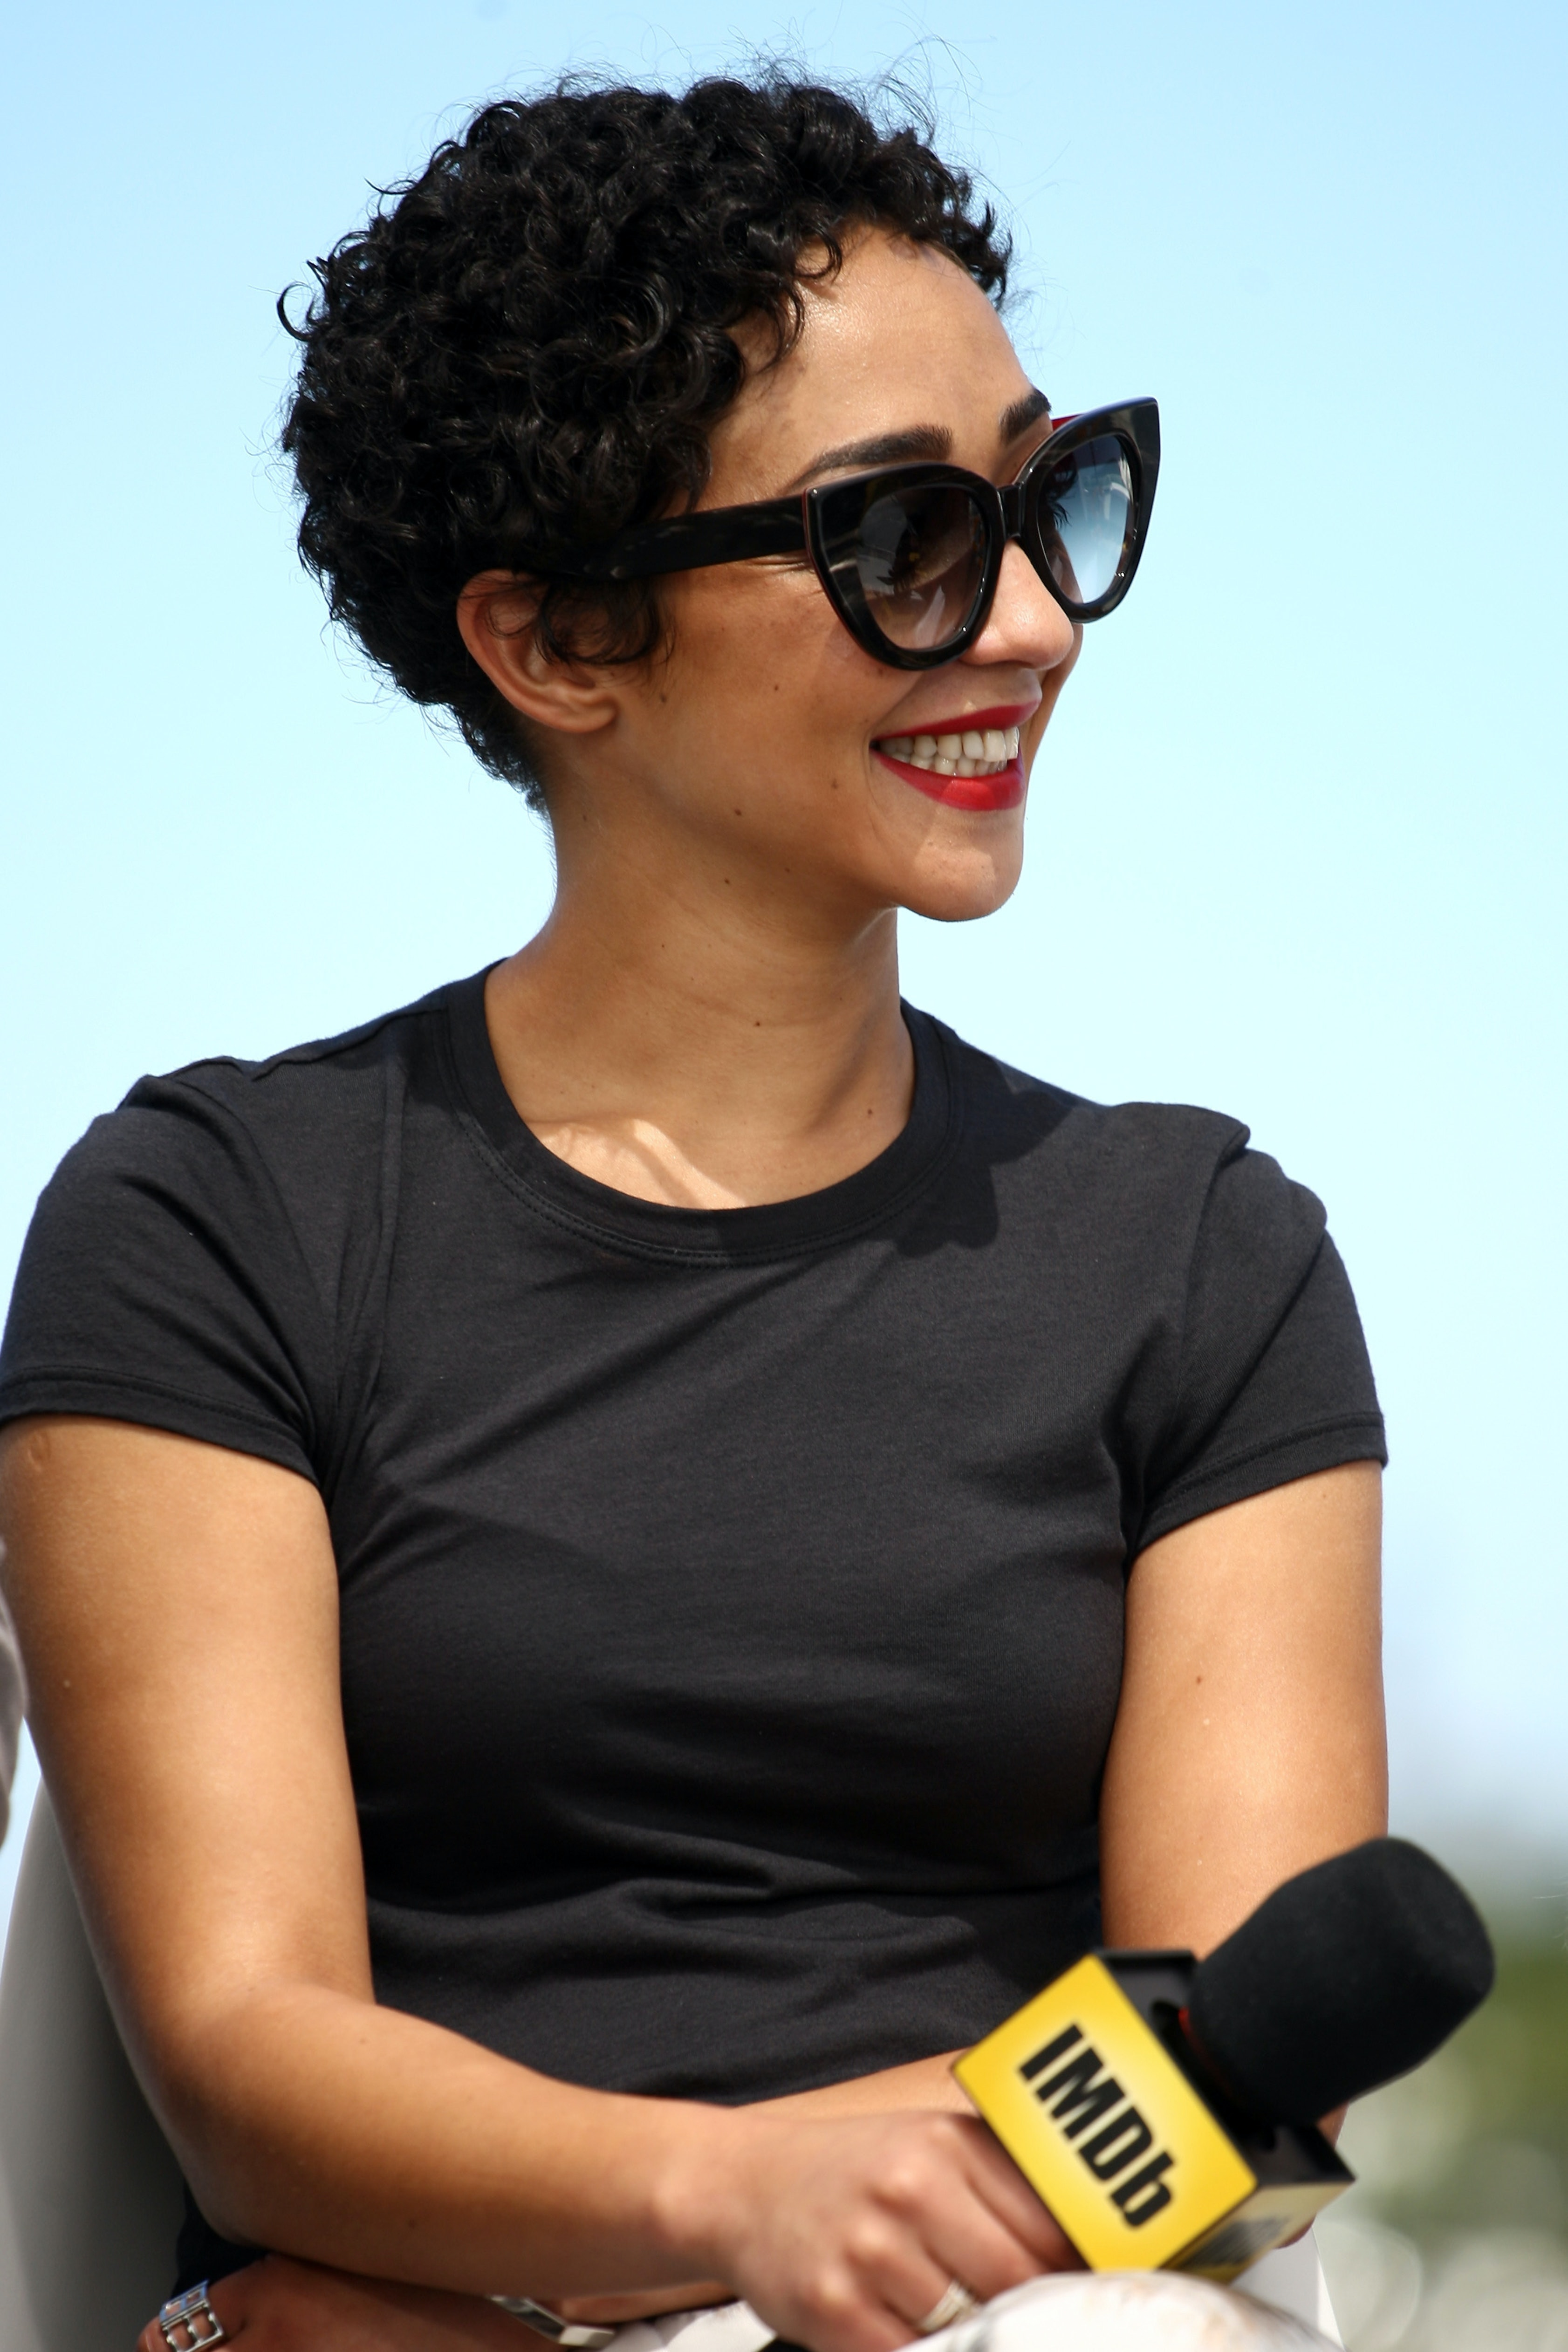 SAN DIEGO, CA - JULY 21:  Actress Ruth Negga attends the IMDb Yacht at San Diego Comic-Con 2016: Day One at The IMDb Yacht on July 21, 2016 in San Diego, California.  (Photo by Tommaso Boddi/Getty Images for IMDb)